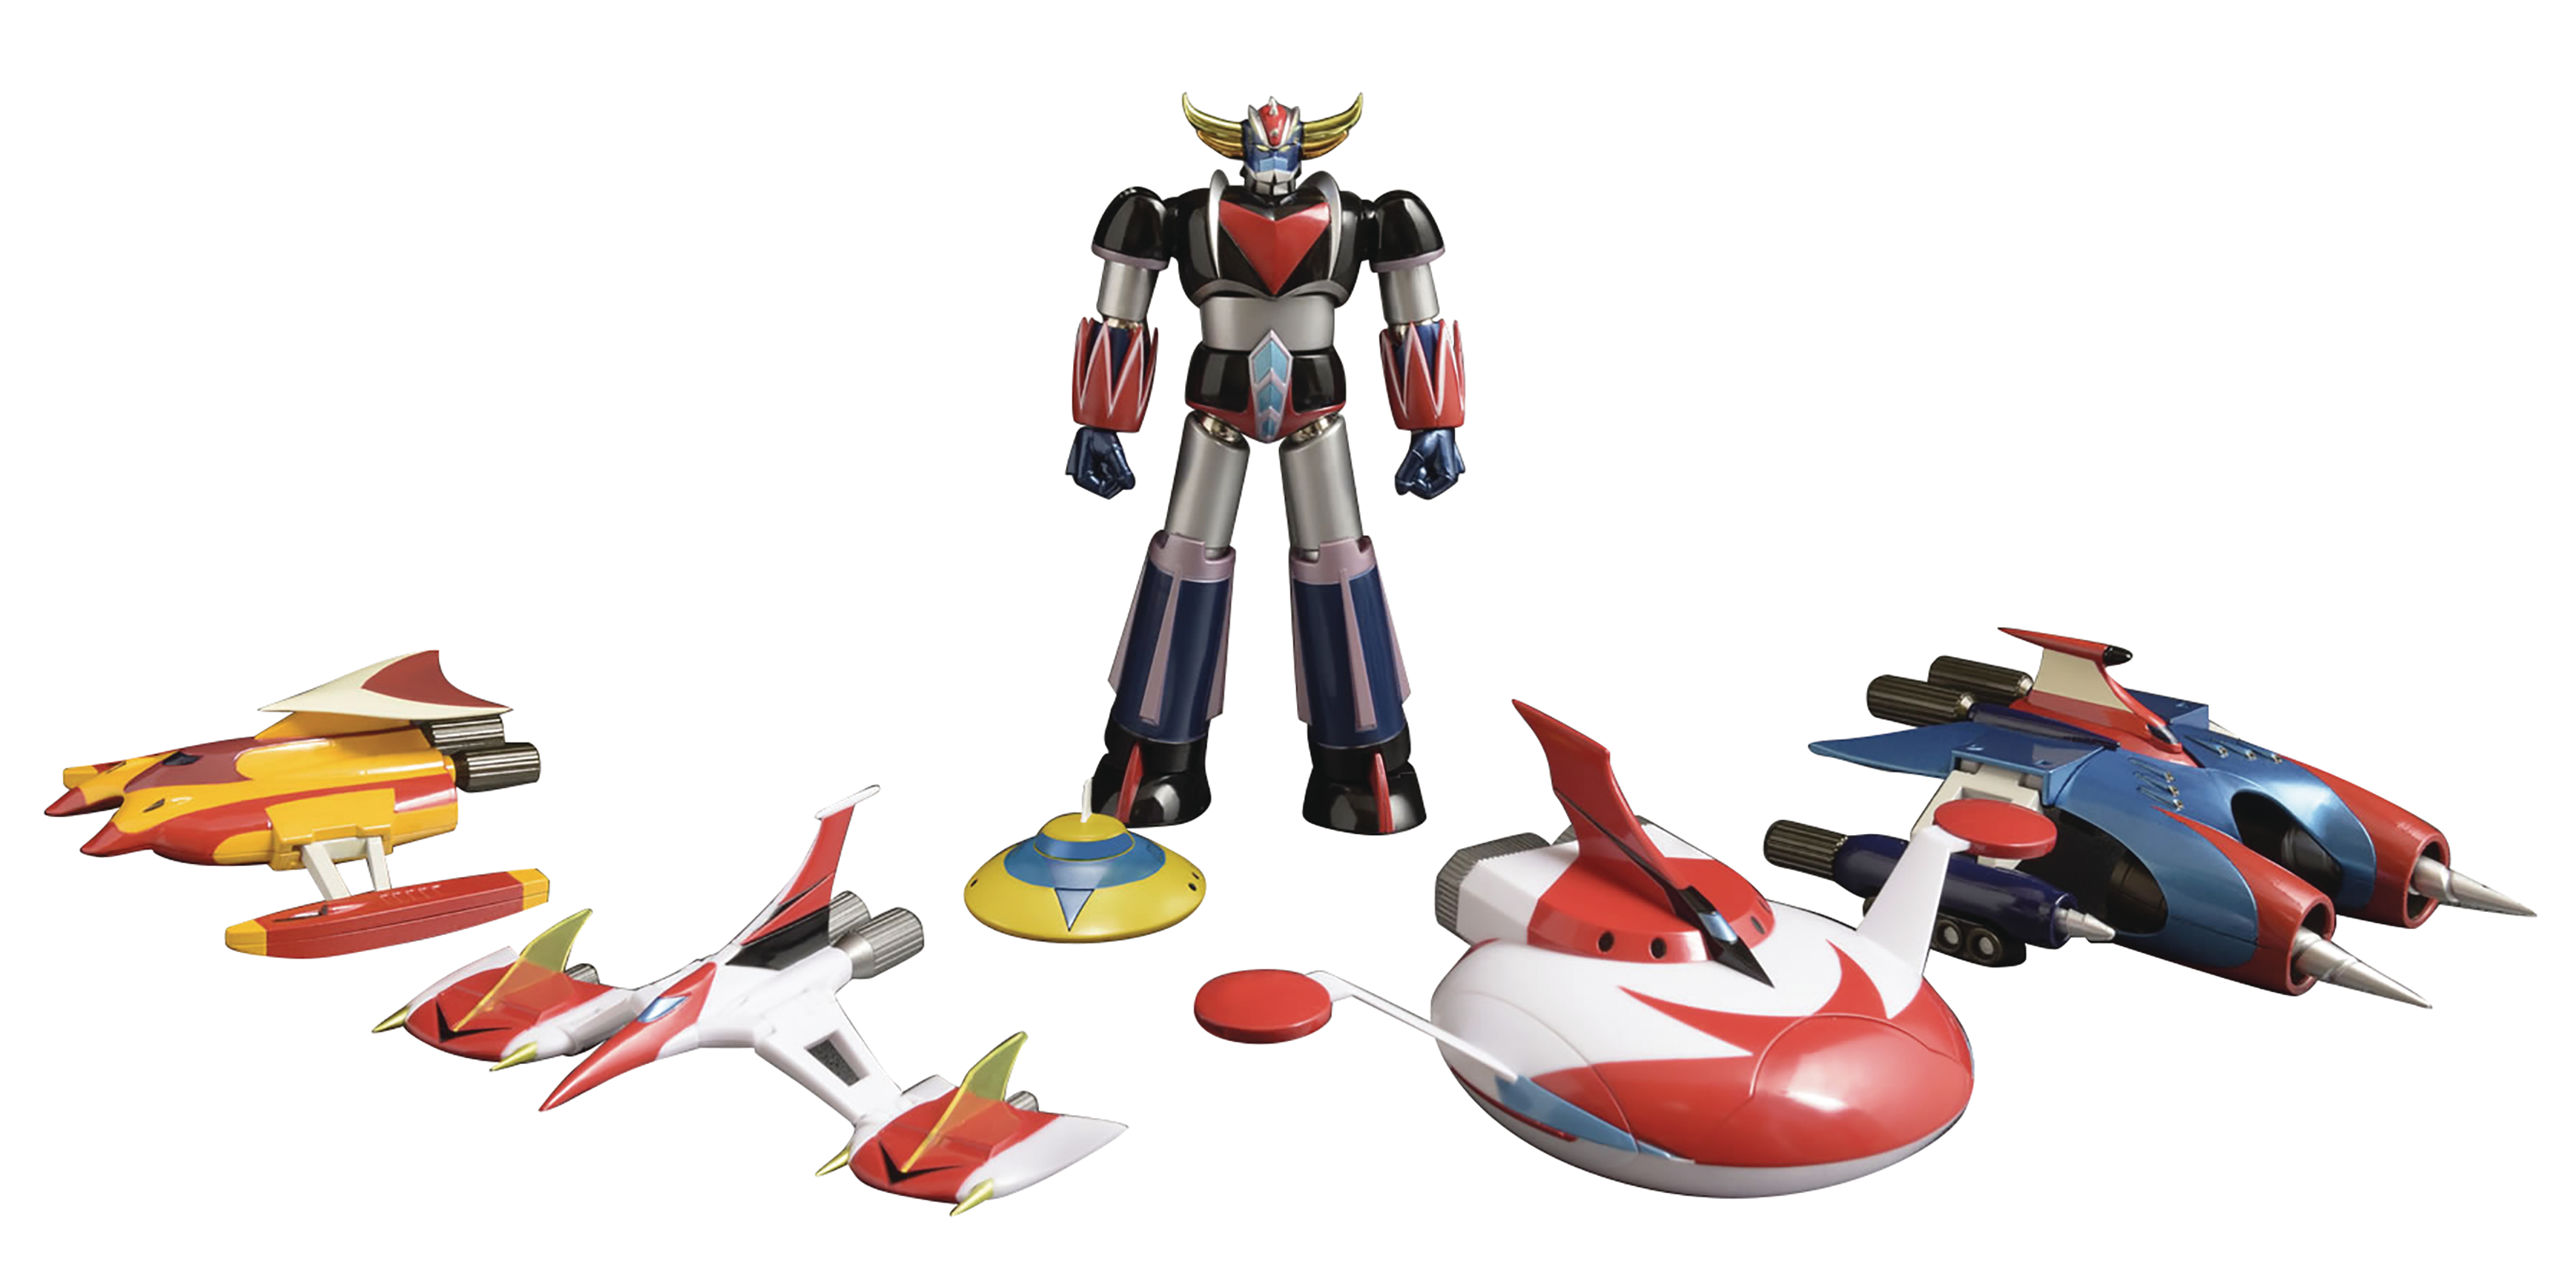 DYNAMITE ACTION GRENDIZER & SPAZERS FIG SET